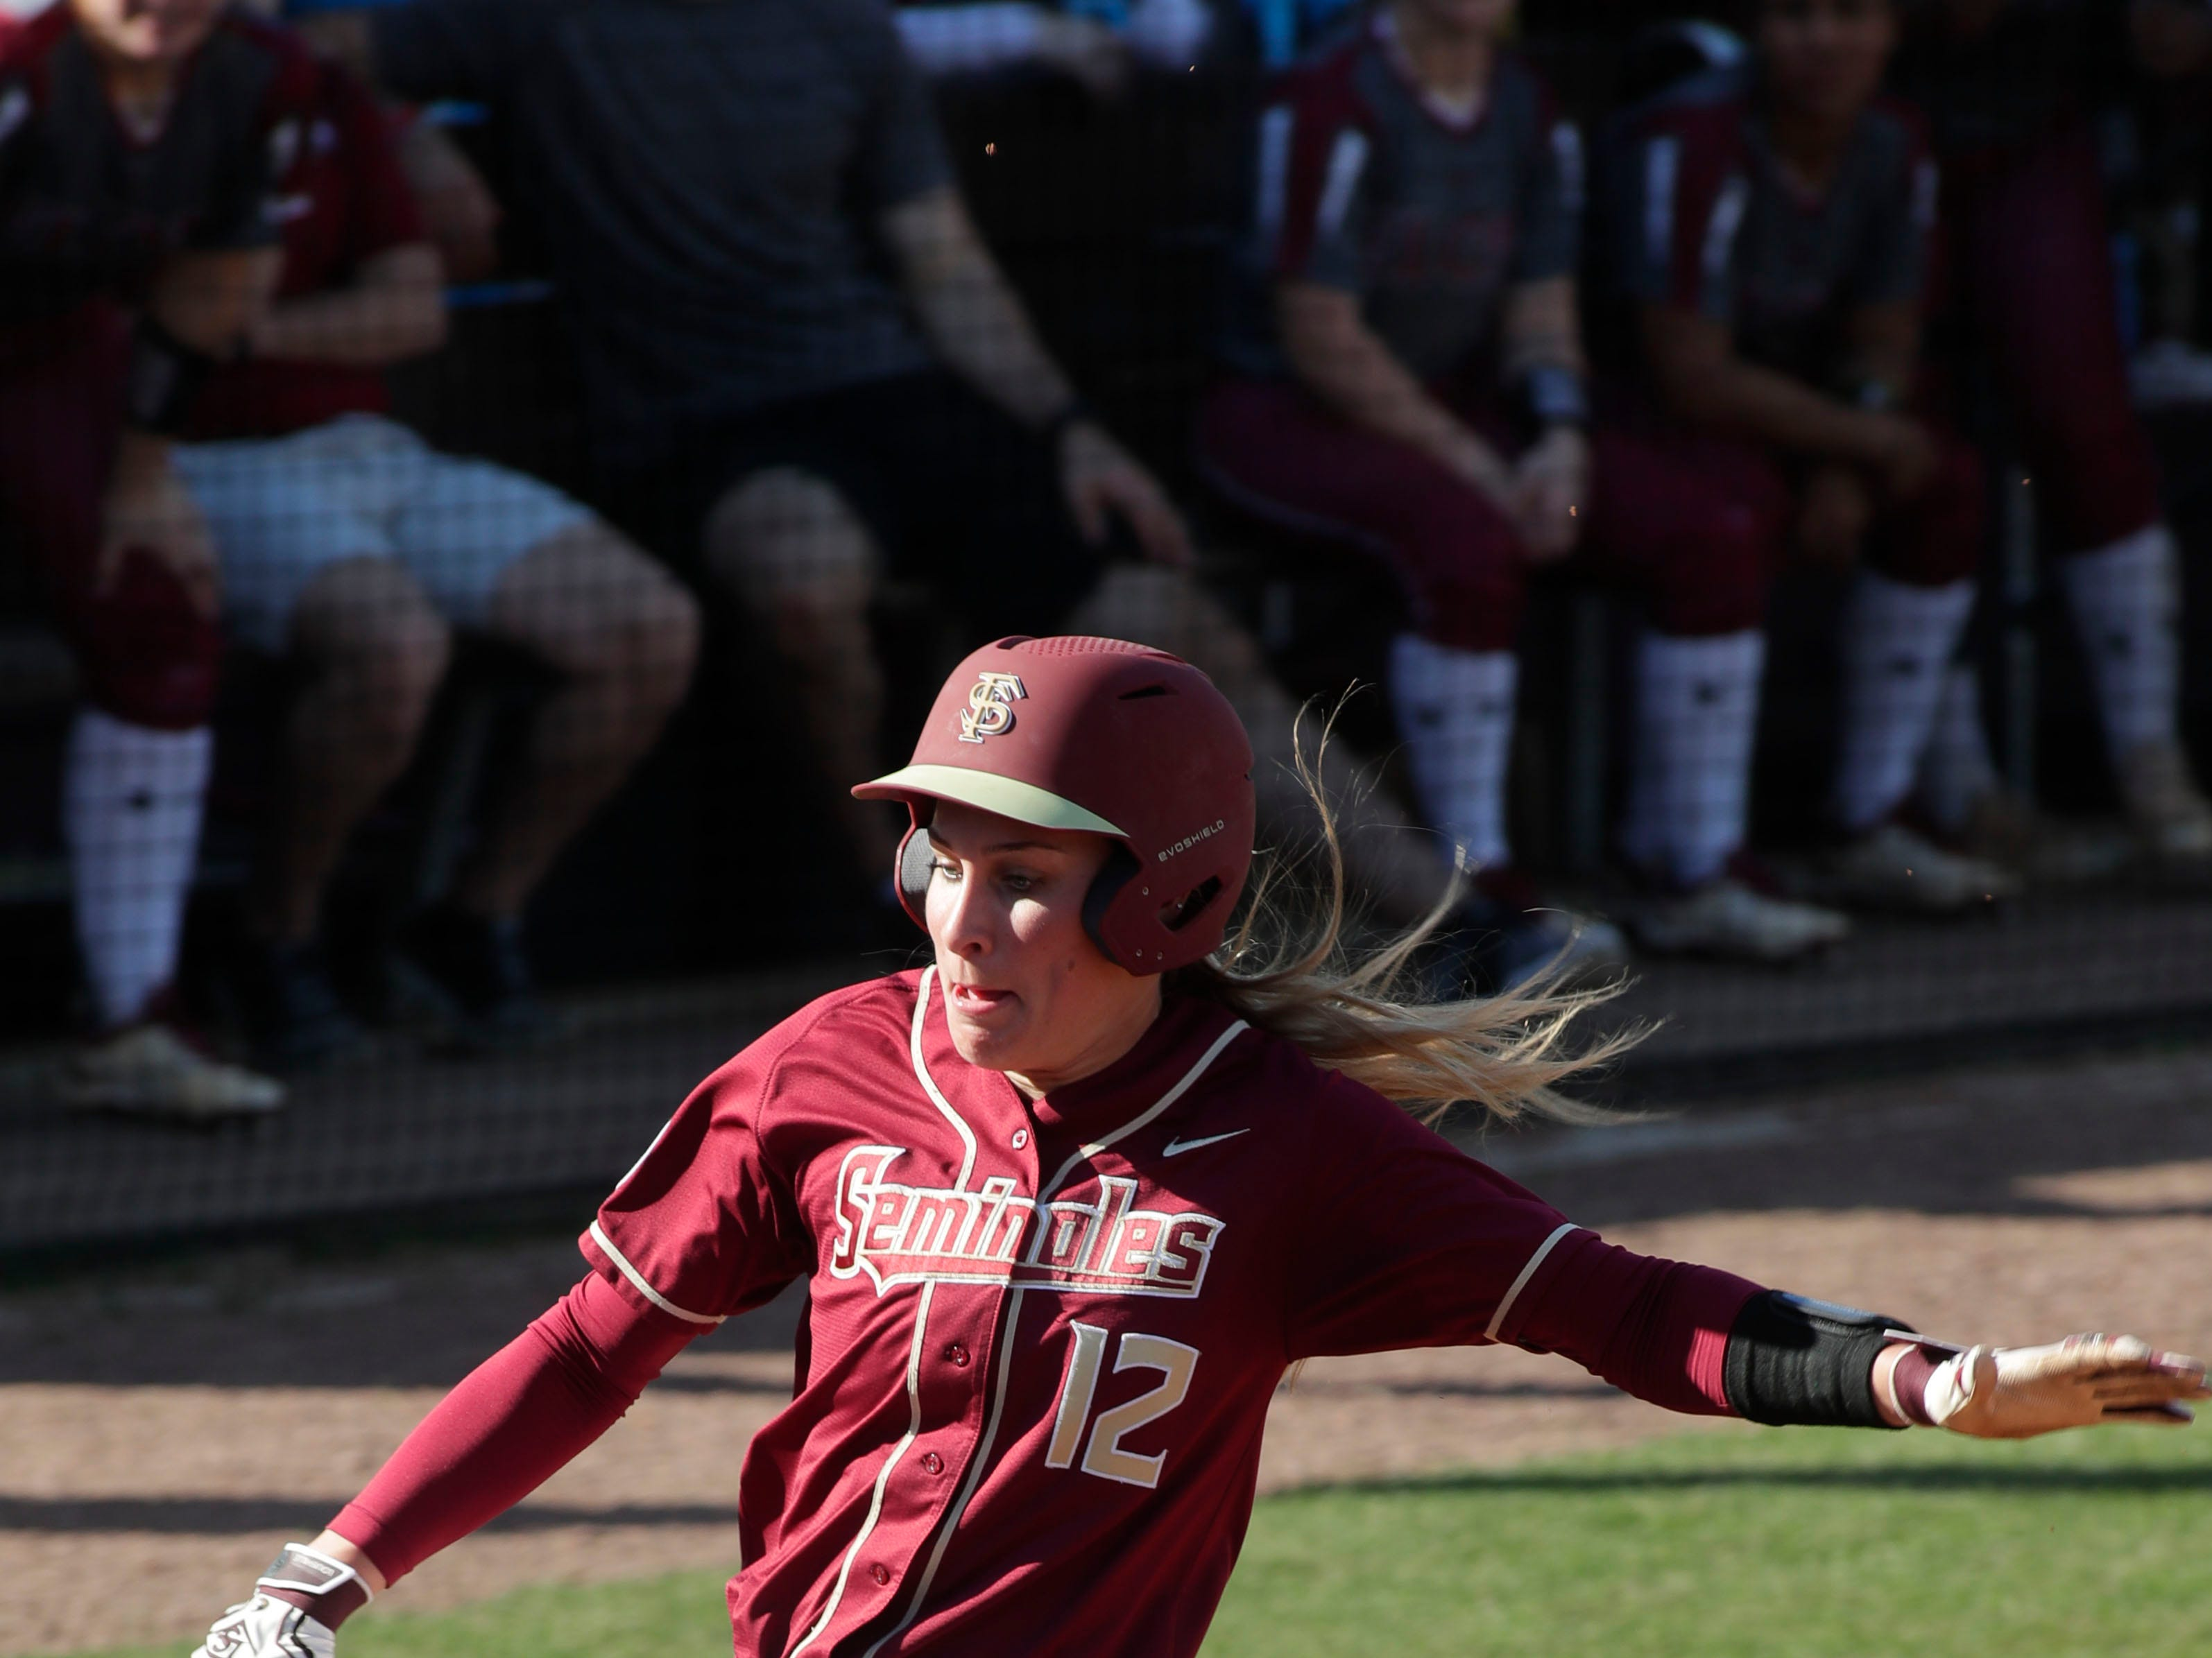 Florida State Seminoles infielder Carsyn Gordon (12) slides into home plate to score a run. The Florida State Seminoles host the Elon Phoenixes for the Unconquered Tournament, Friday Feb. 22, 2019.